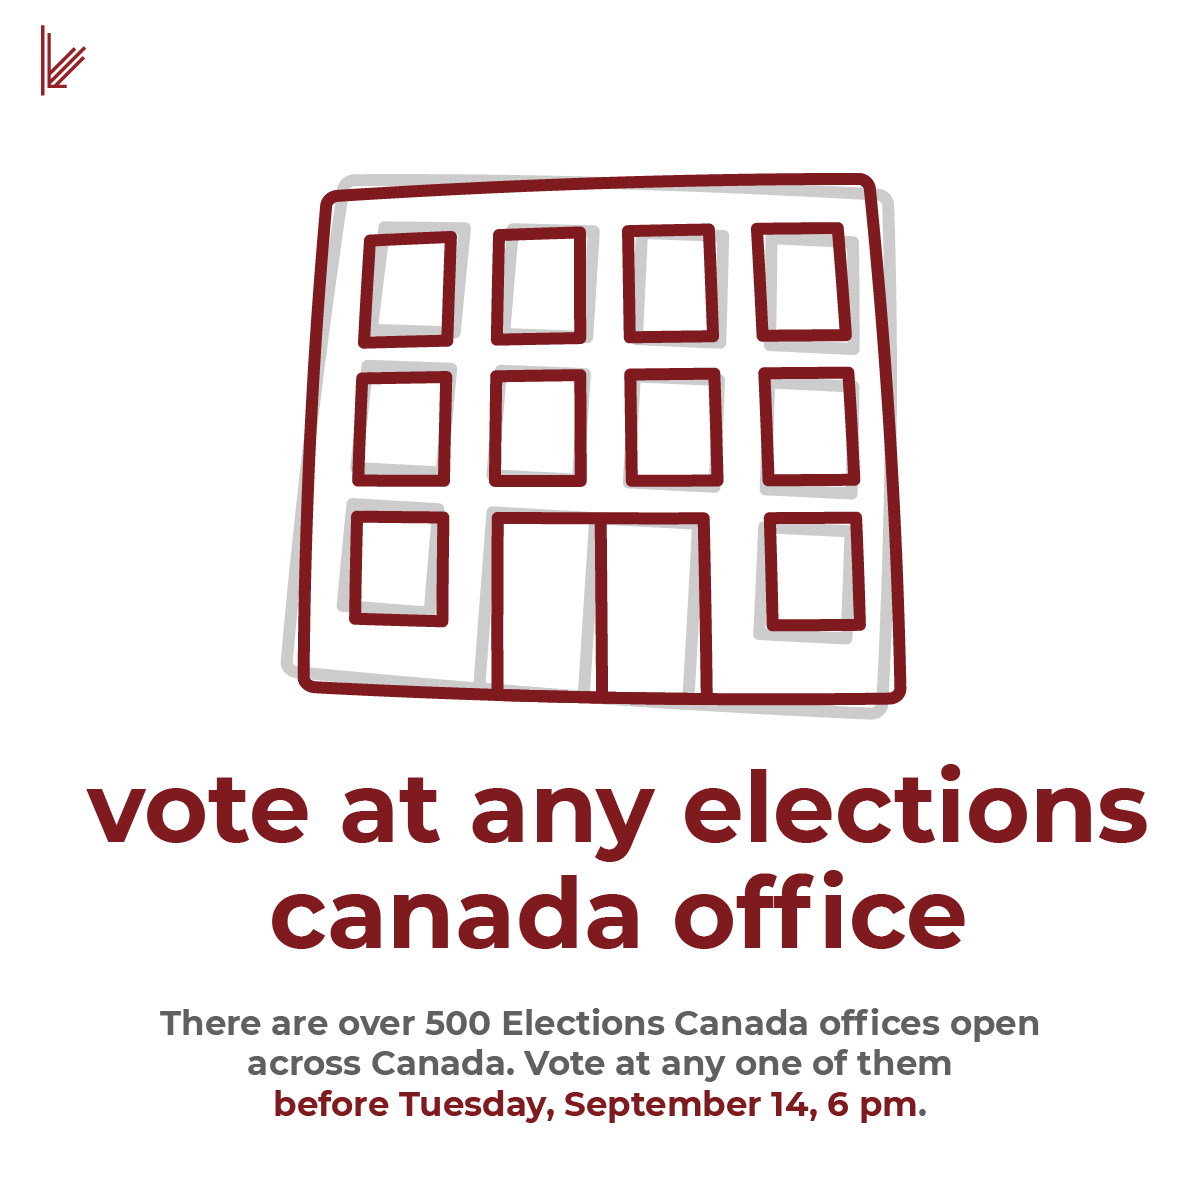 elections_canada_office.png